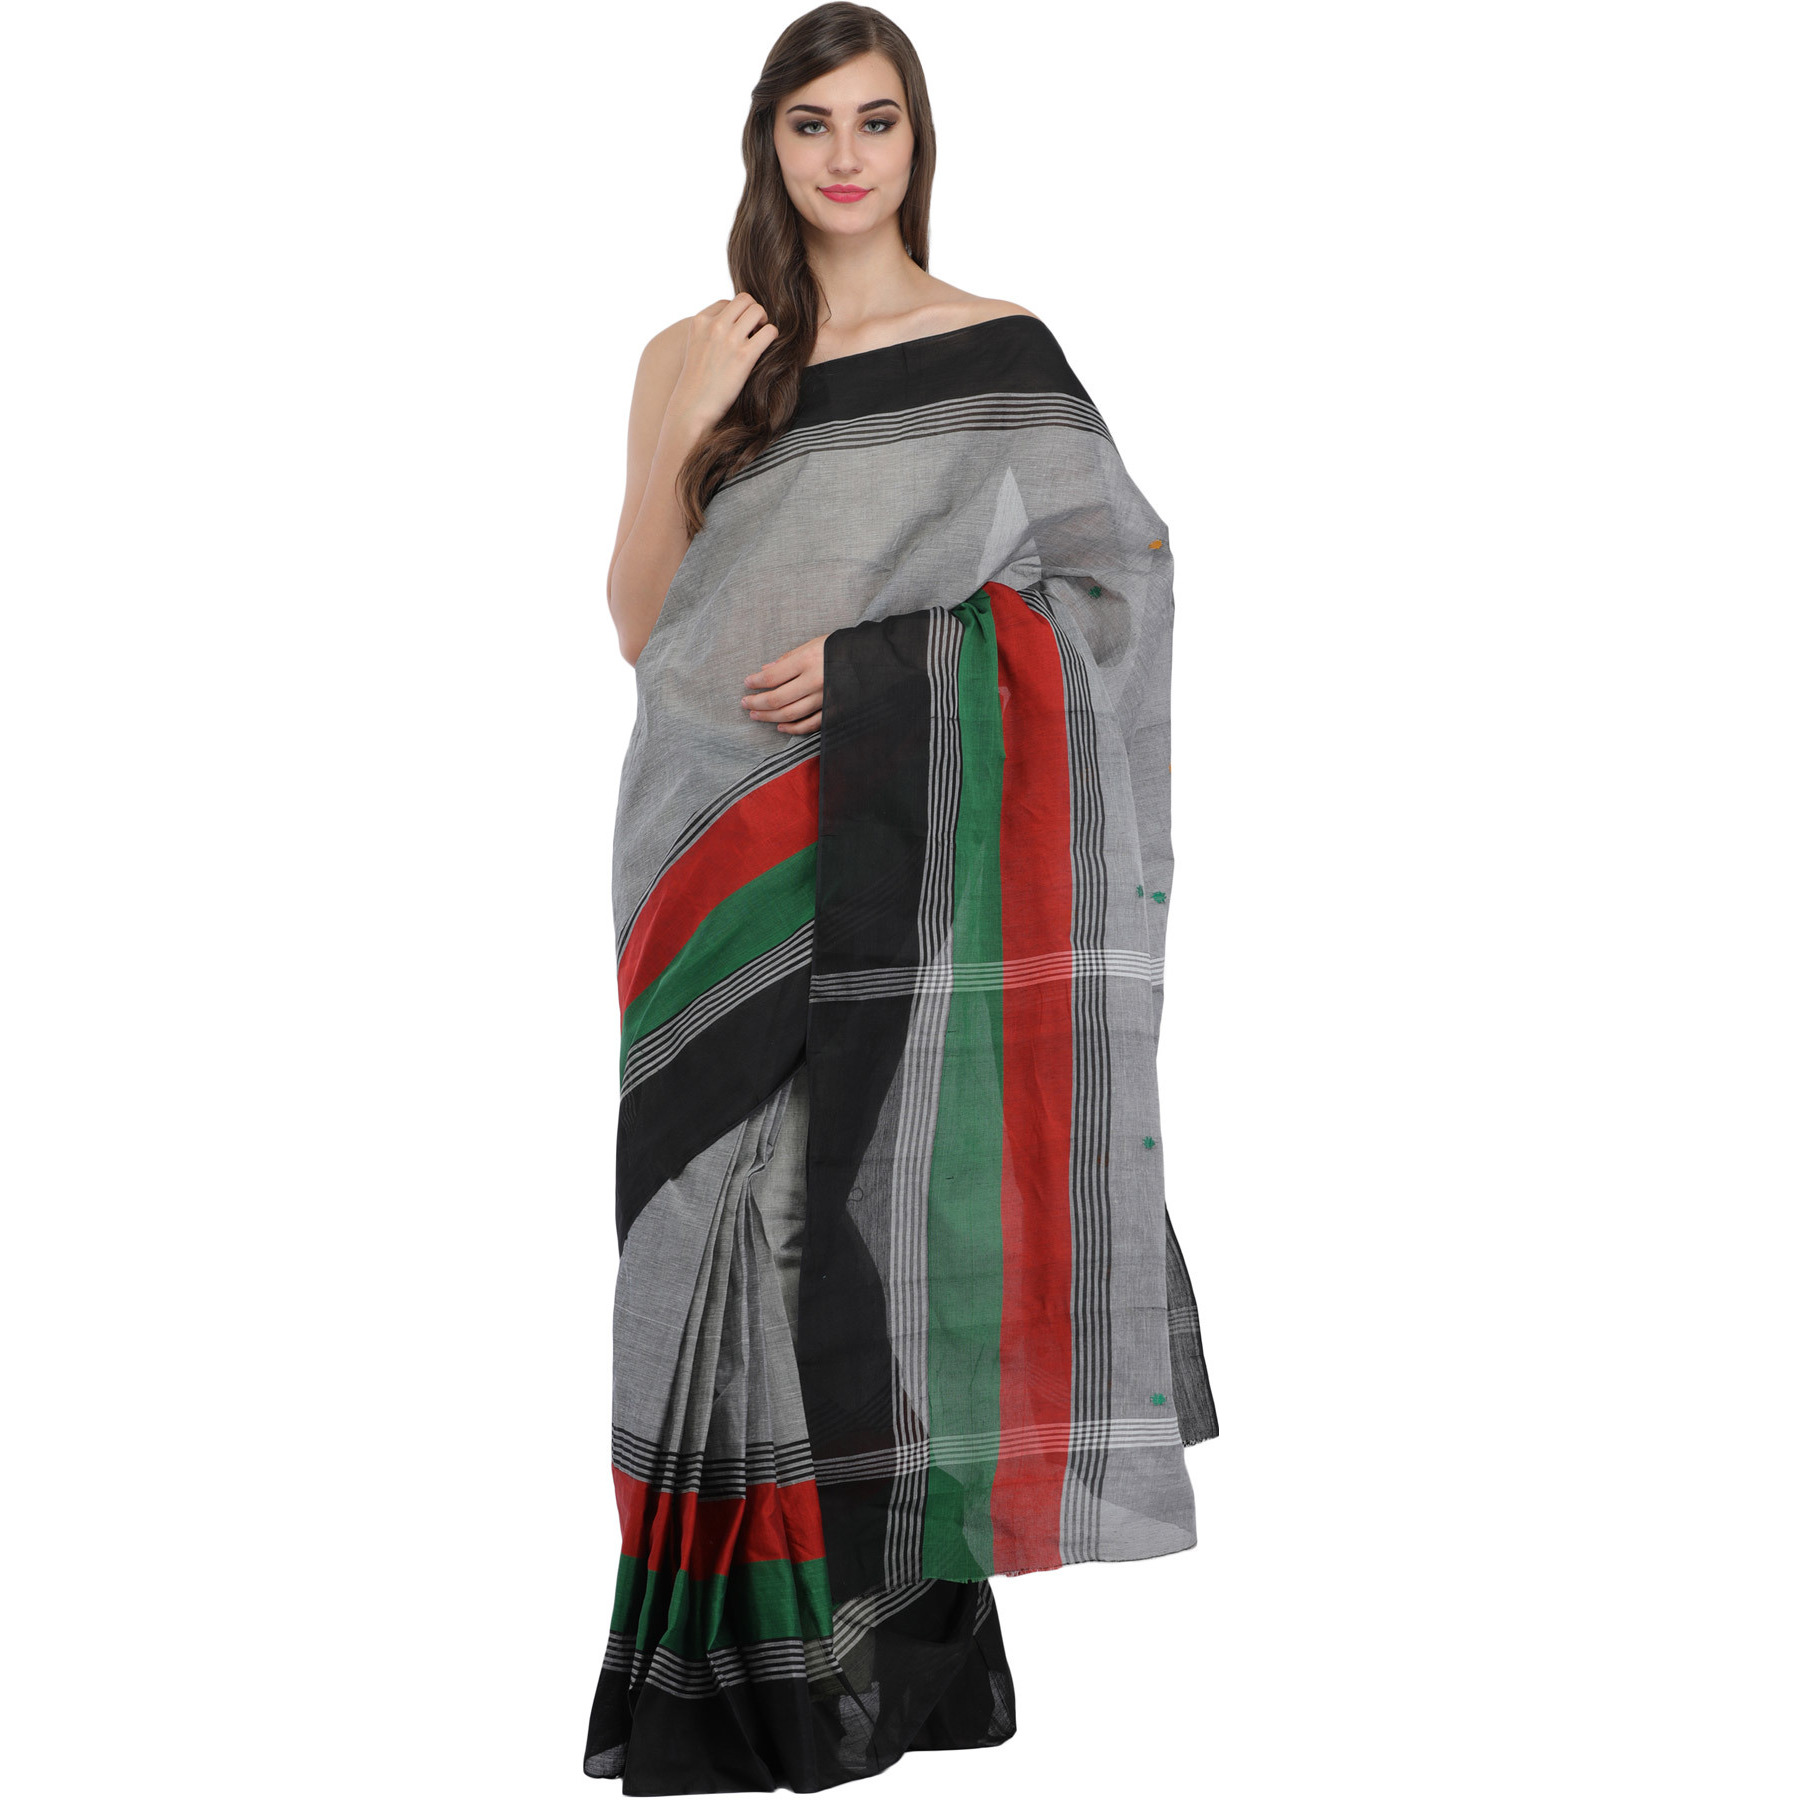 Wild-Dove Sari from Bangladesh with Woven Stripes